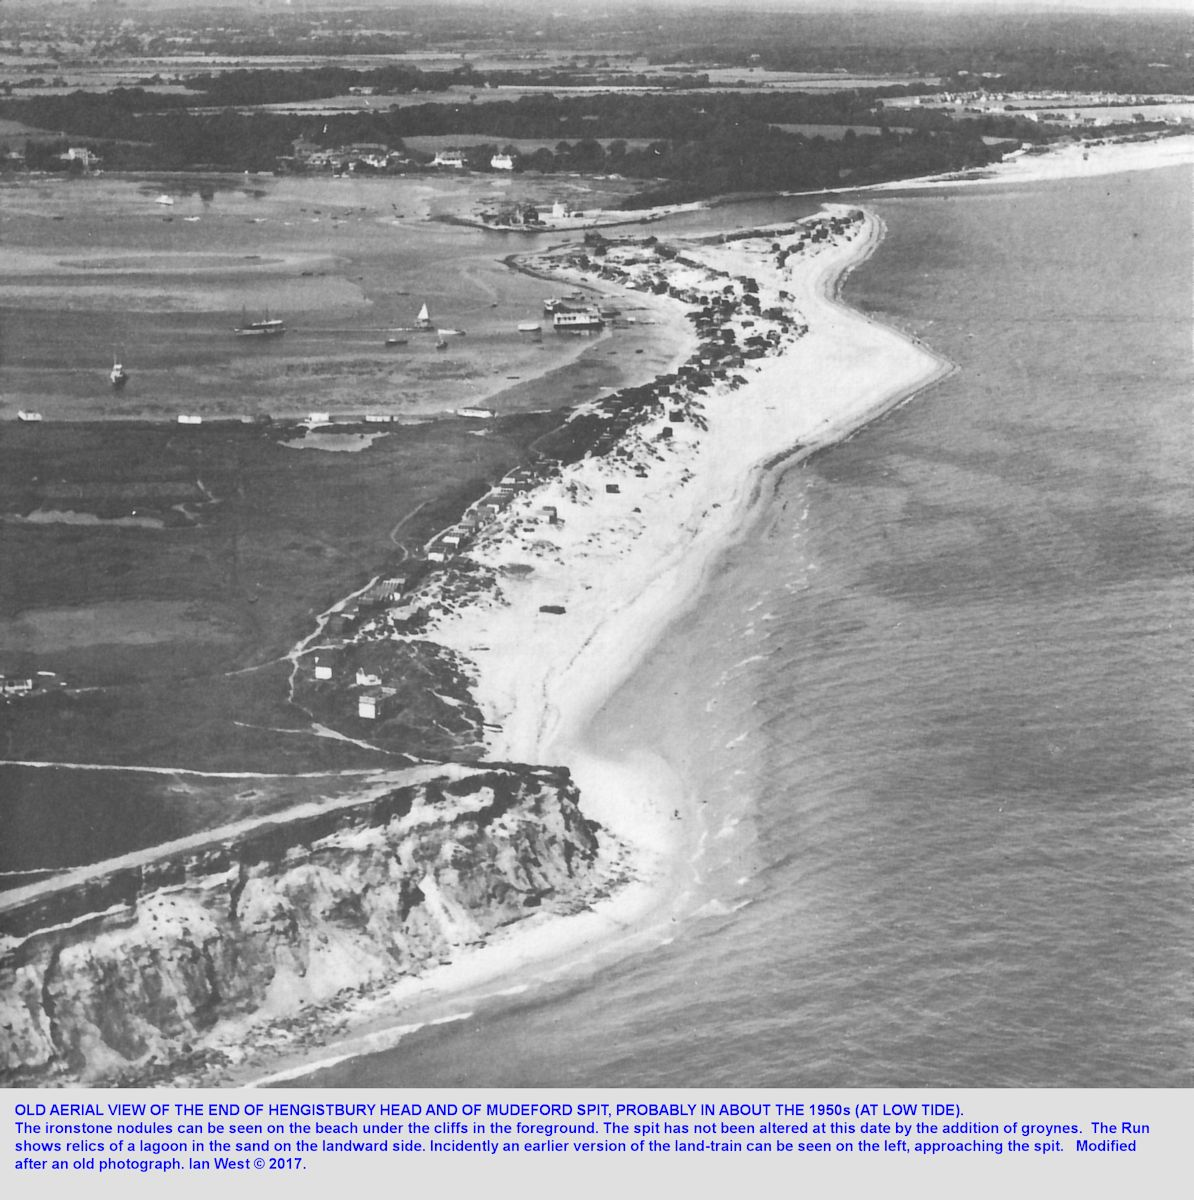 An old aerial photograph of Mudeford Spit at the end of Hengistbury Head, Bournemouth, Dorset, probably from the 1950s, and before many groynes were emplaced